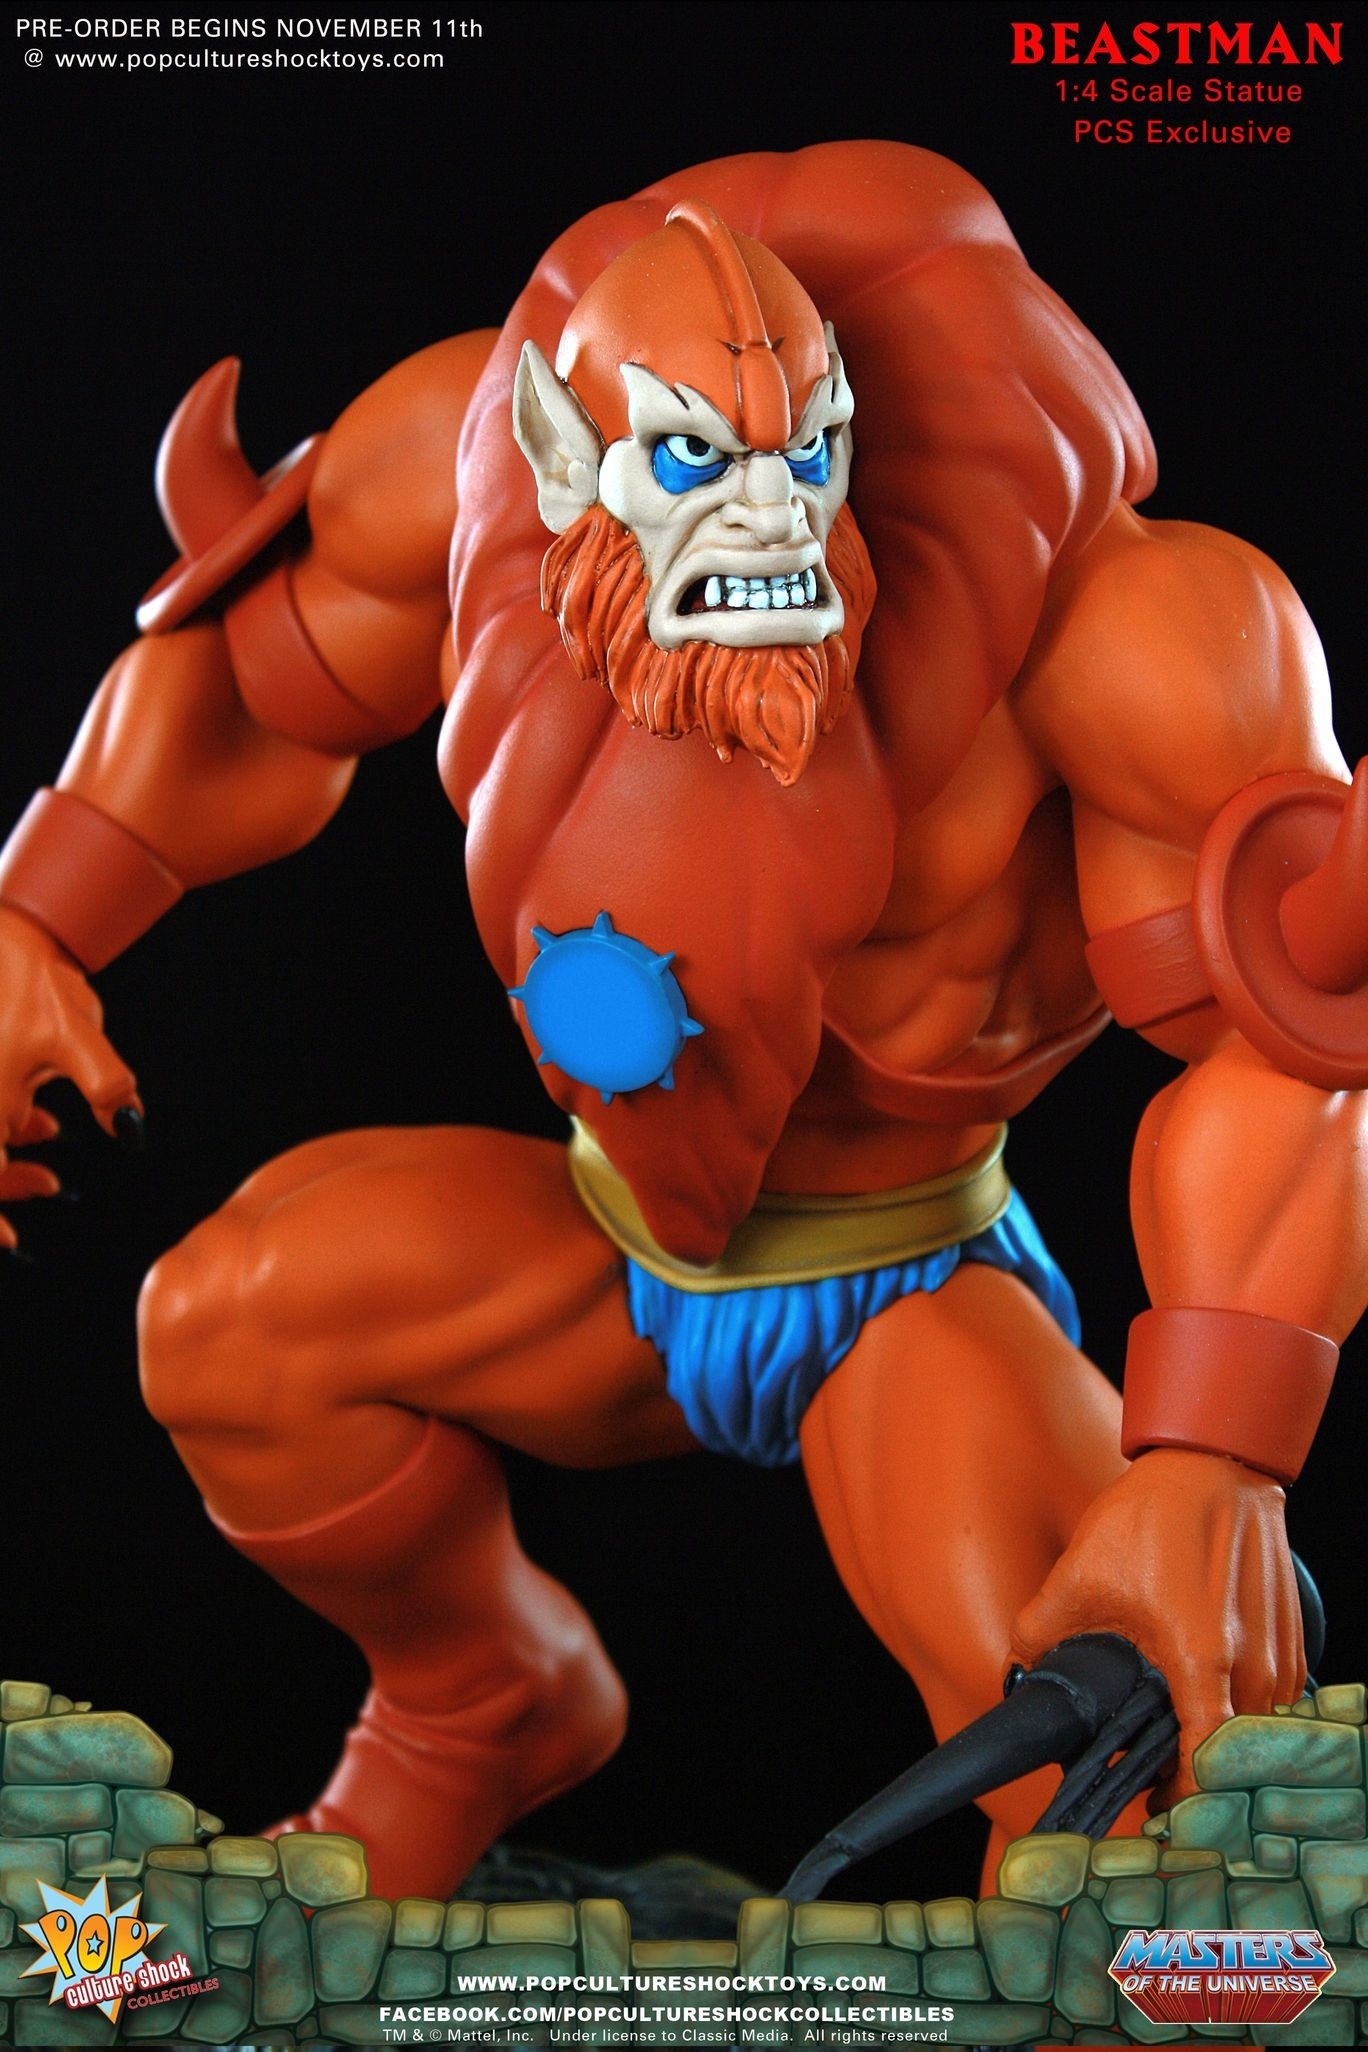 Alejandro pereira beastman exclusive edition motu pop culture shock 07